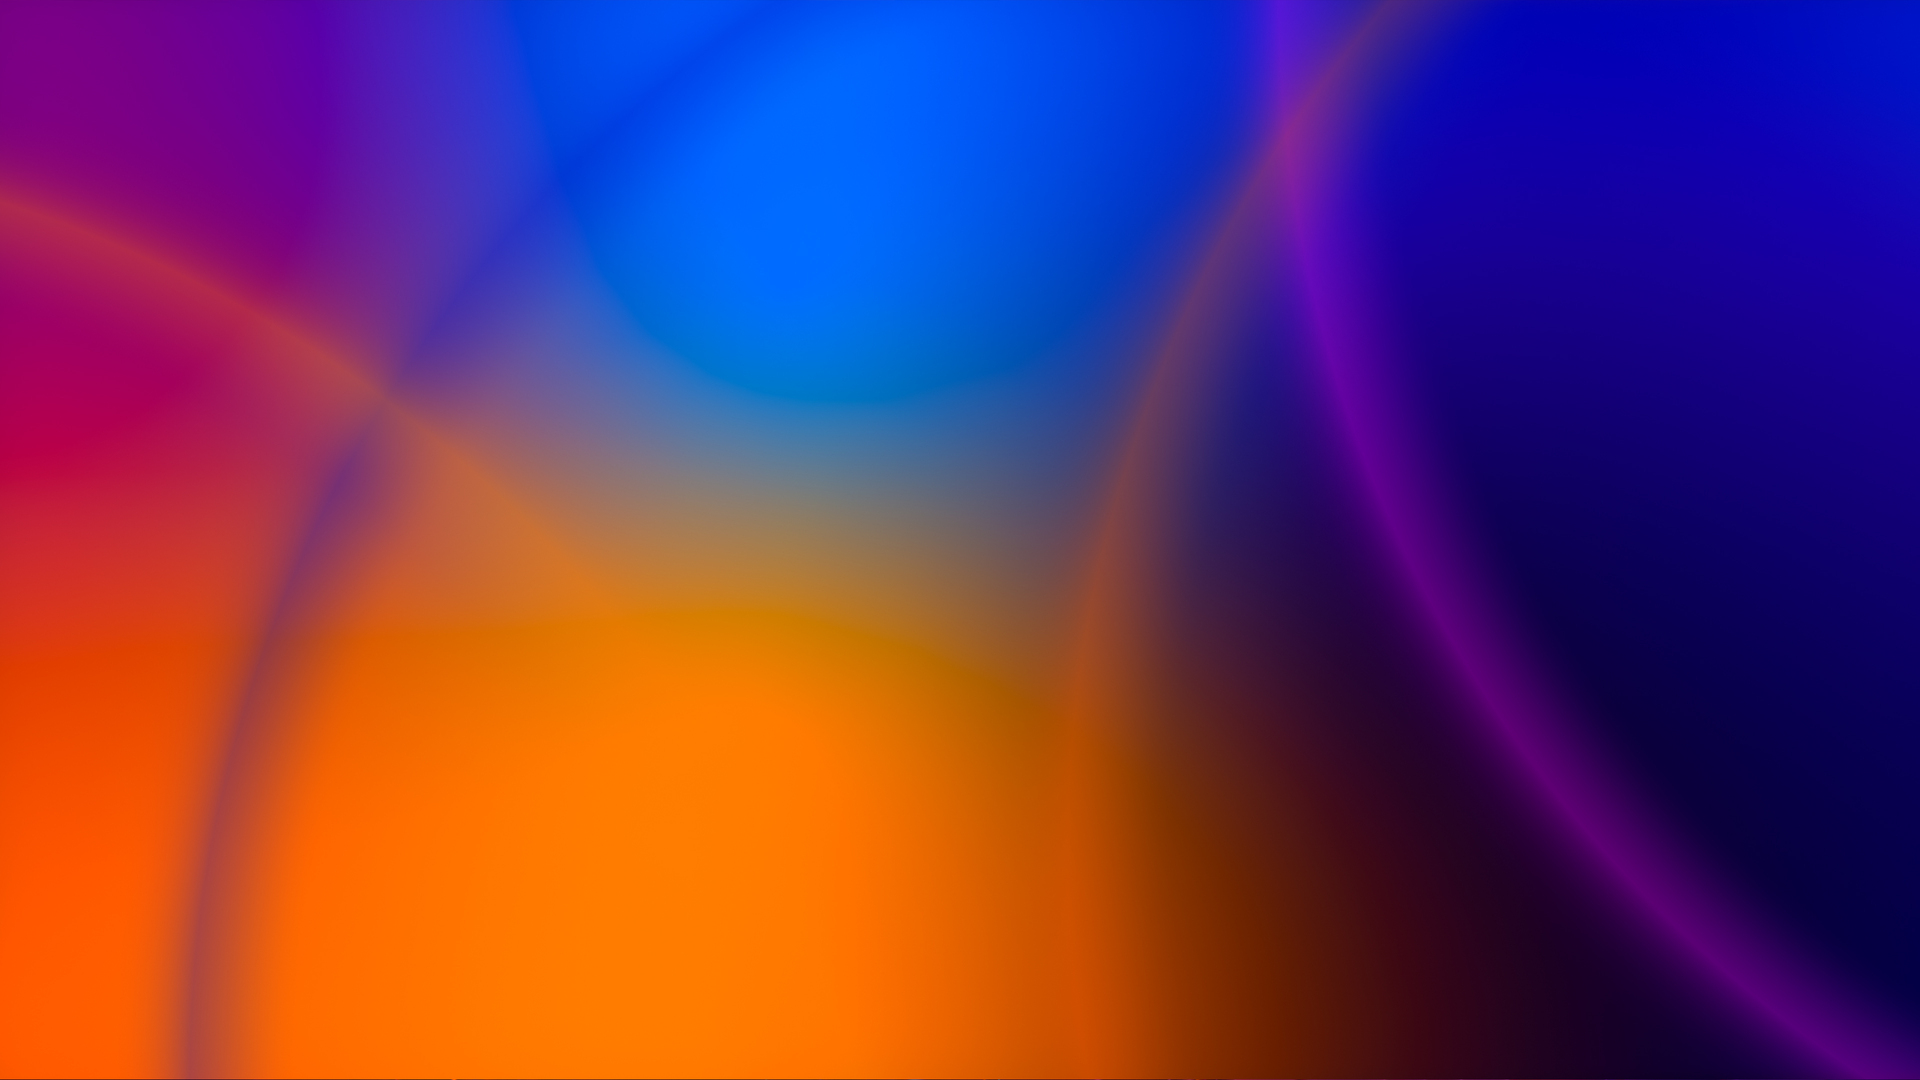 1920x1080 Blur Abstract Art 4k Laptop Full Hd 1080p Hd 4k Wallpapers Images Backgrounds Photos And Pictures